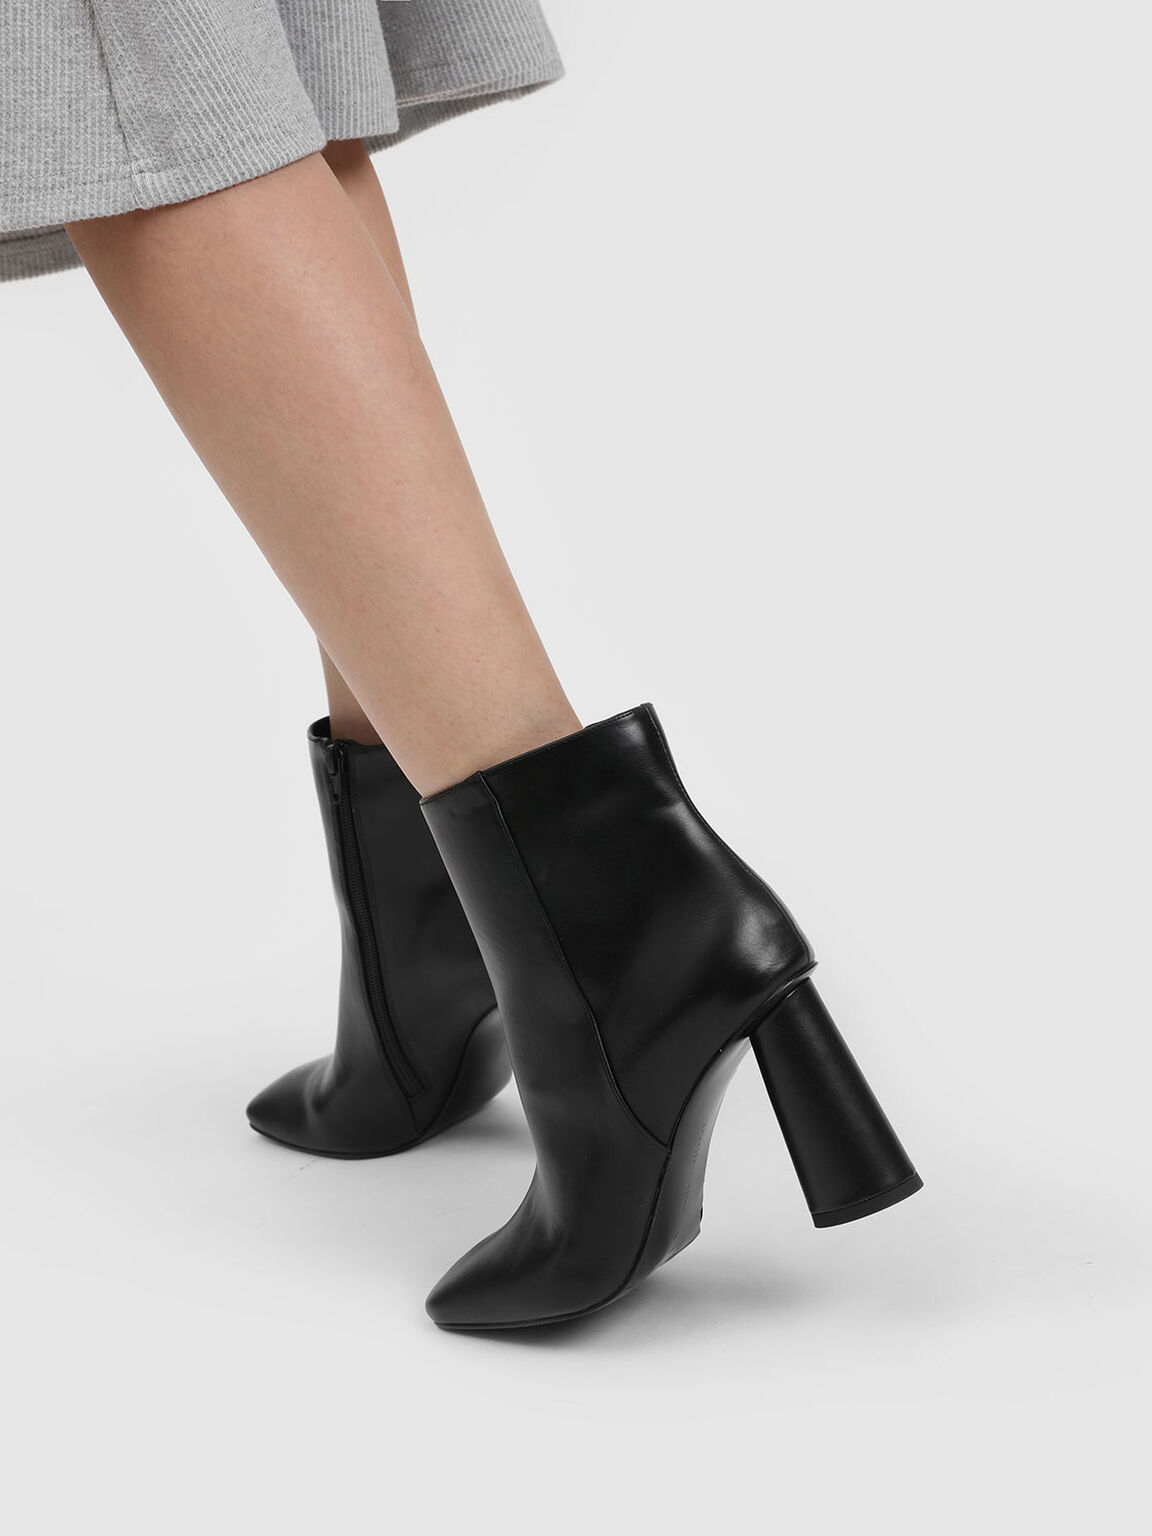 Square Toe Calf Boots, Black, hi-res